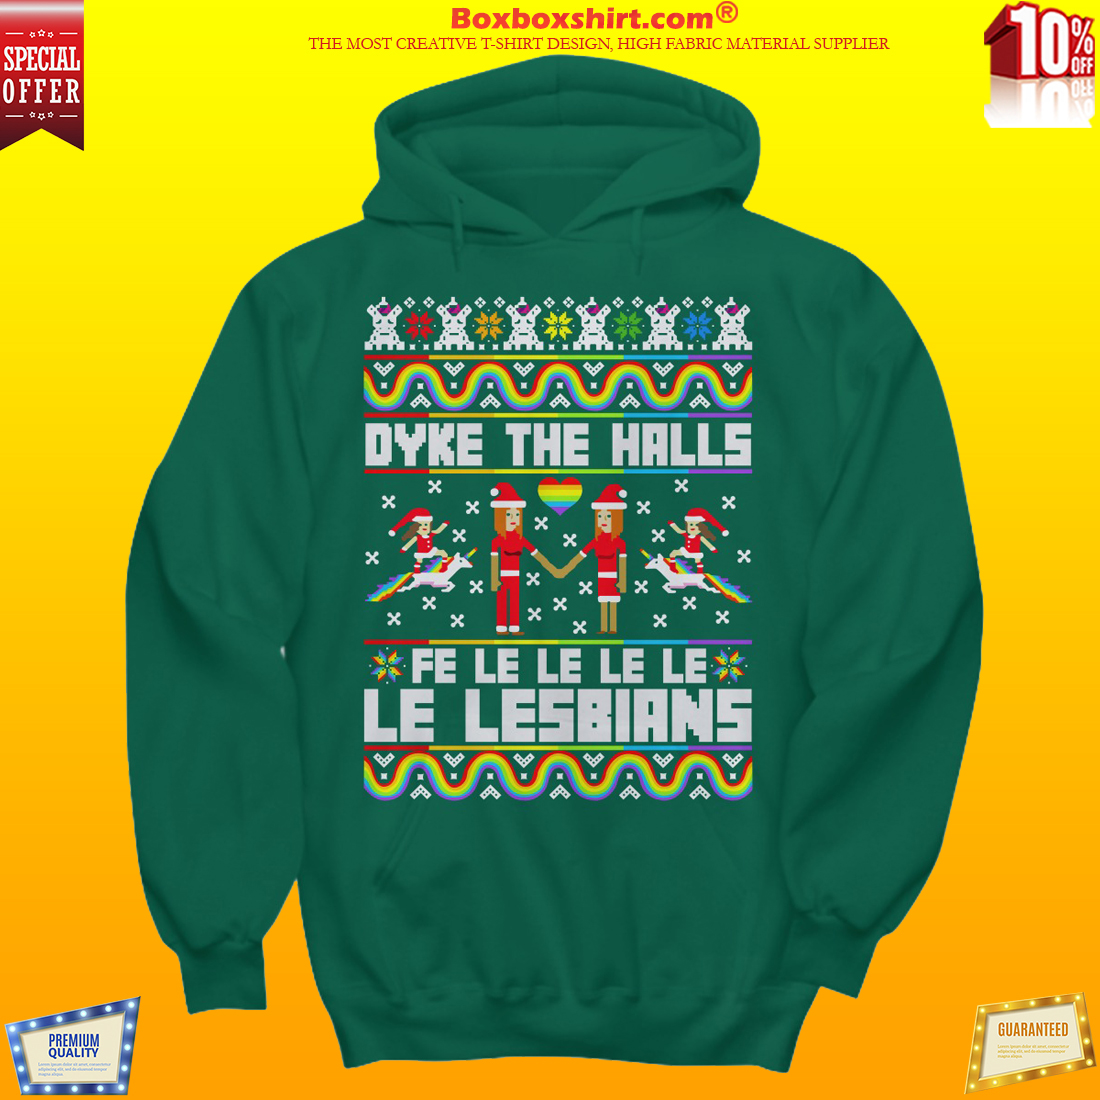 Dyke the halls le lesbians sweater shirt